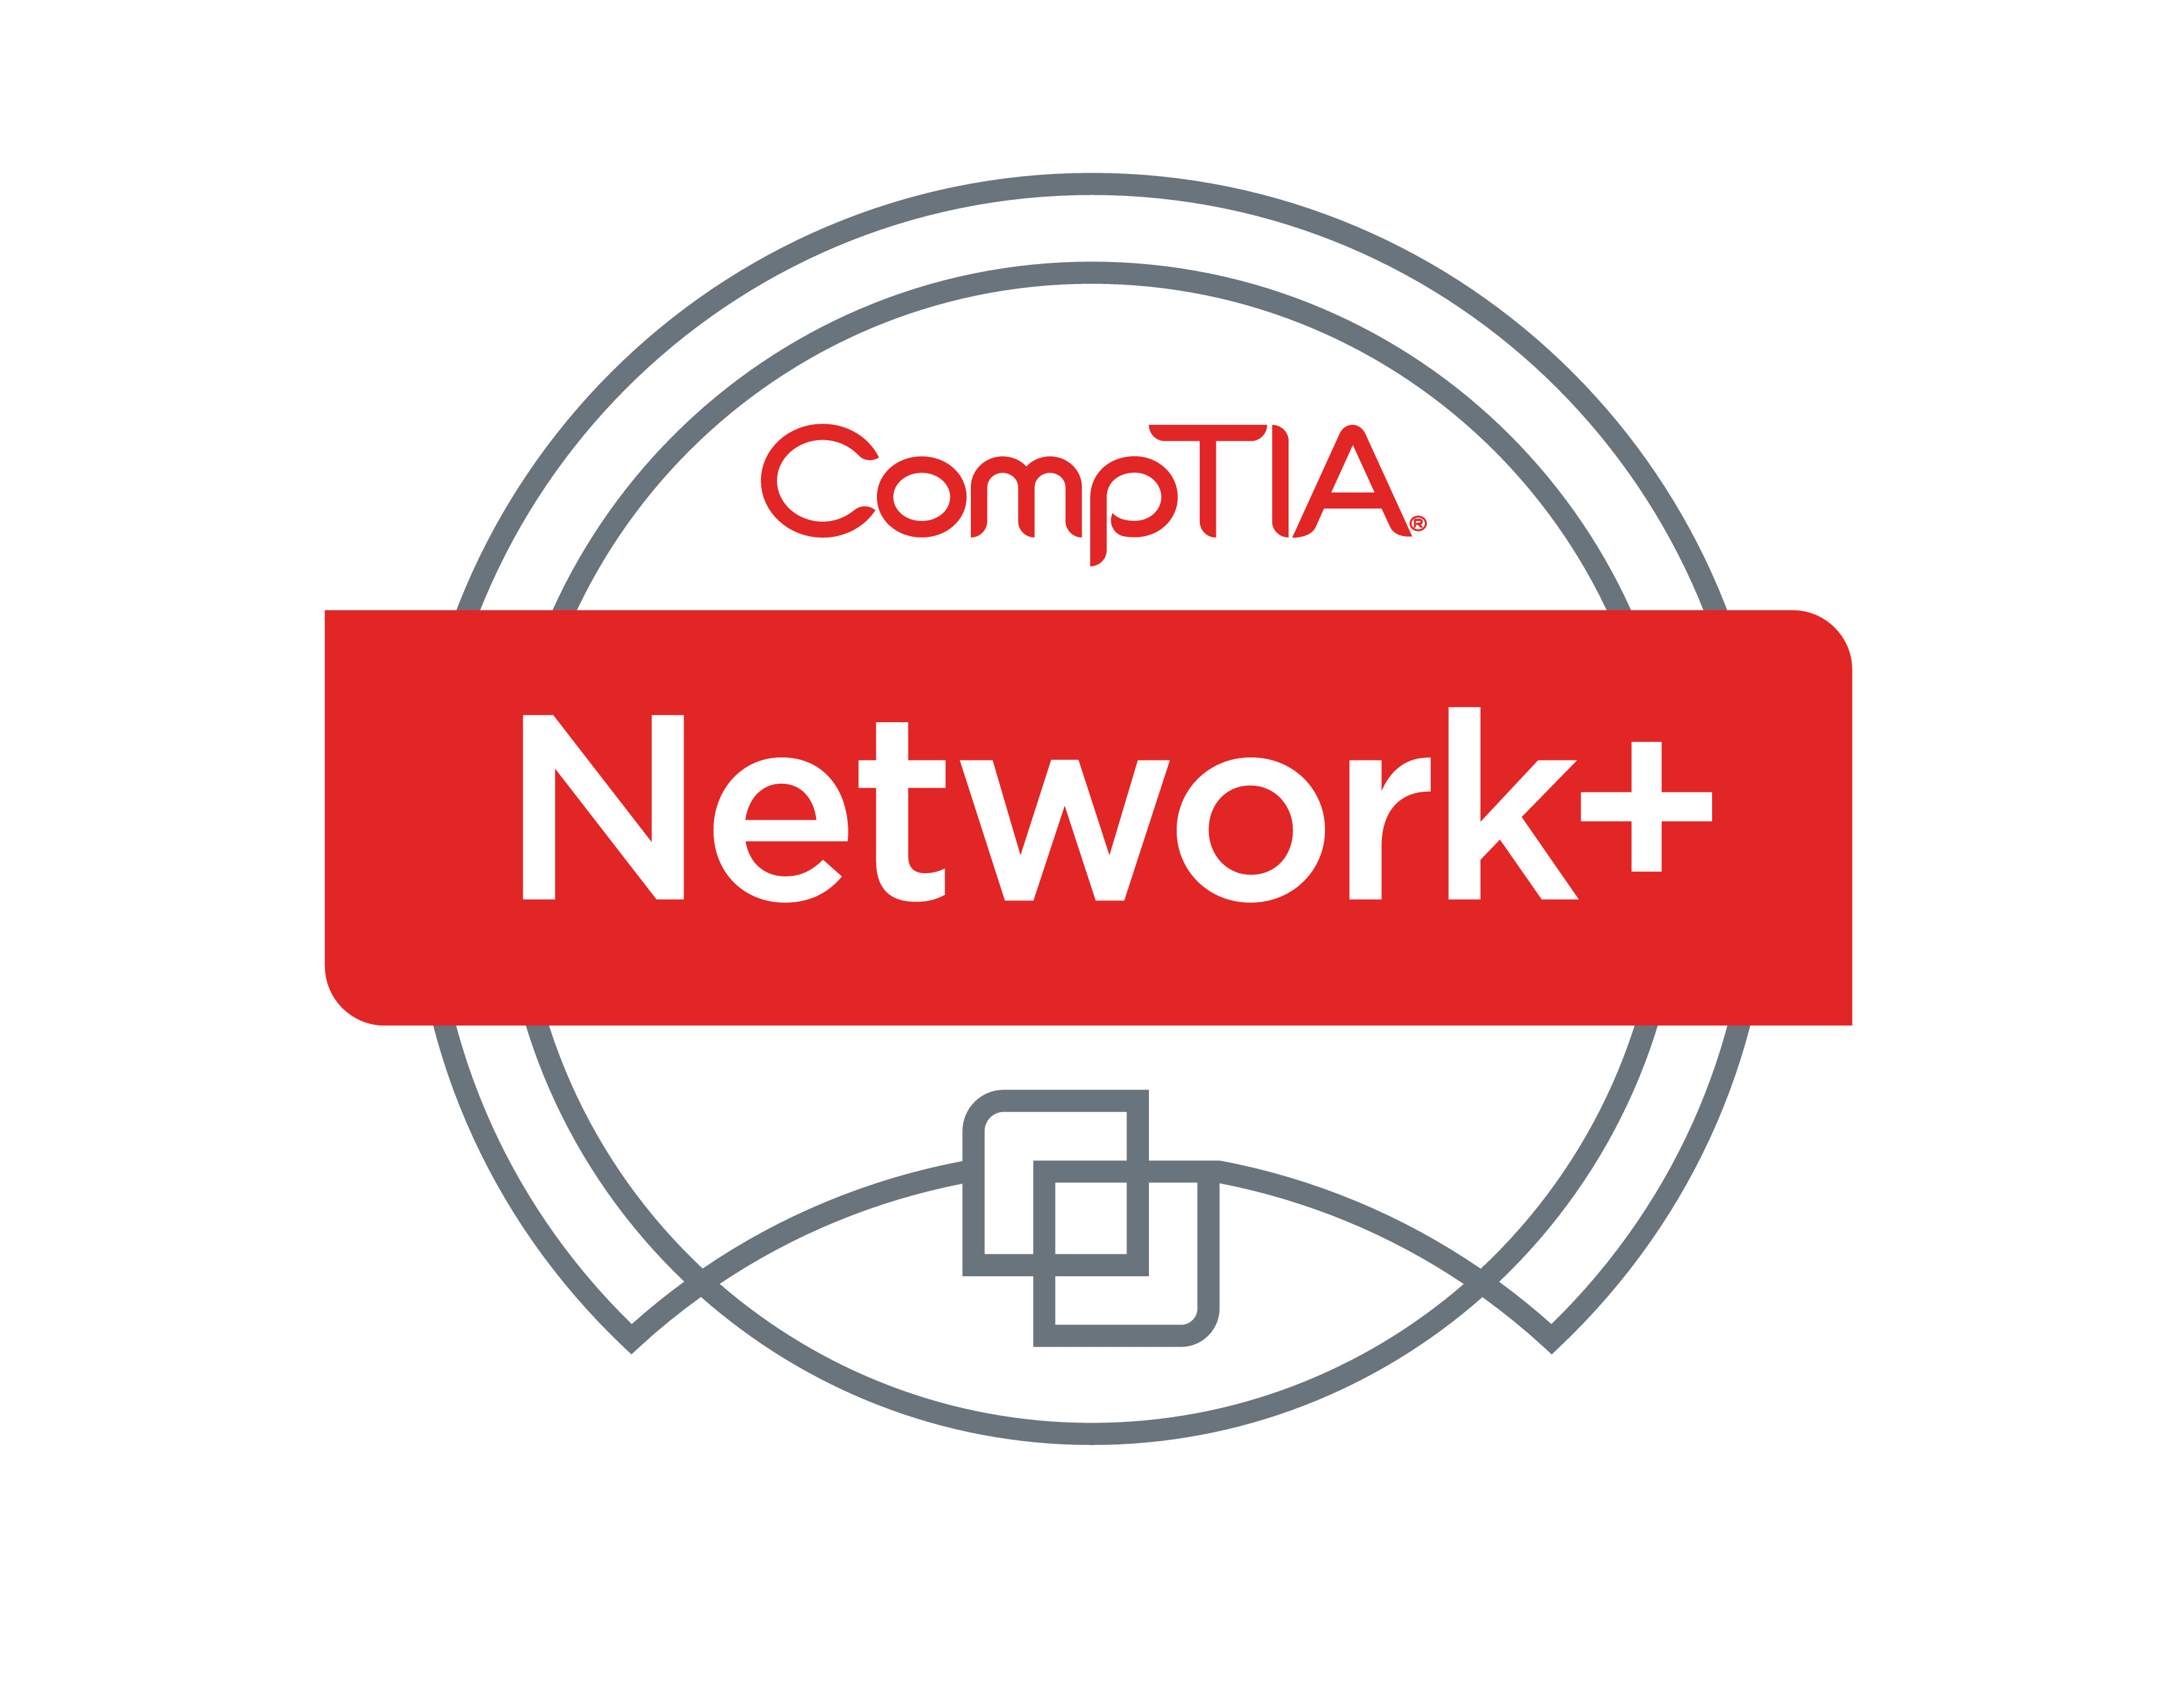 network comptia certification security plus training n10 007 certificate cyber career why boot camp networking ccna before certified vouchers certificates